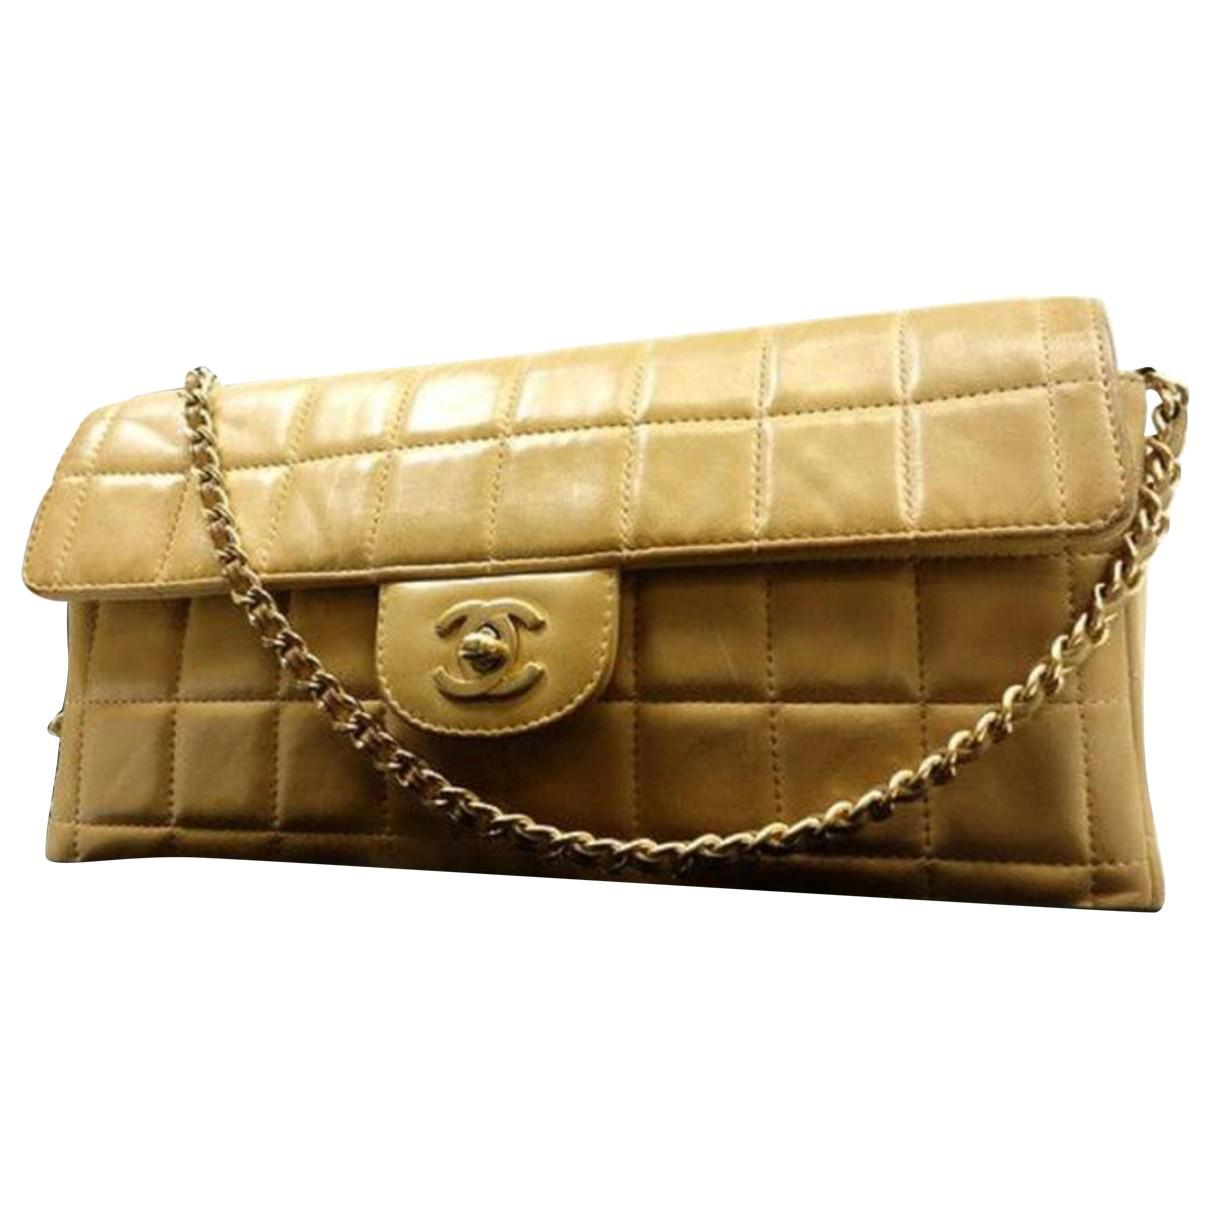 ca6f7dd1b8b6 Chanel Pre-owned East West Chocolate Bar Patent Leather Handbag in ...